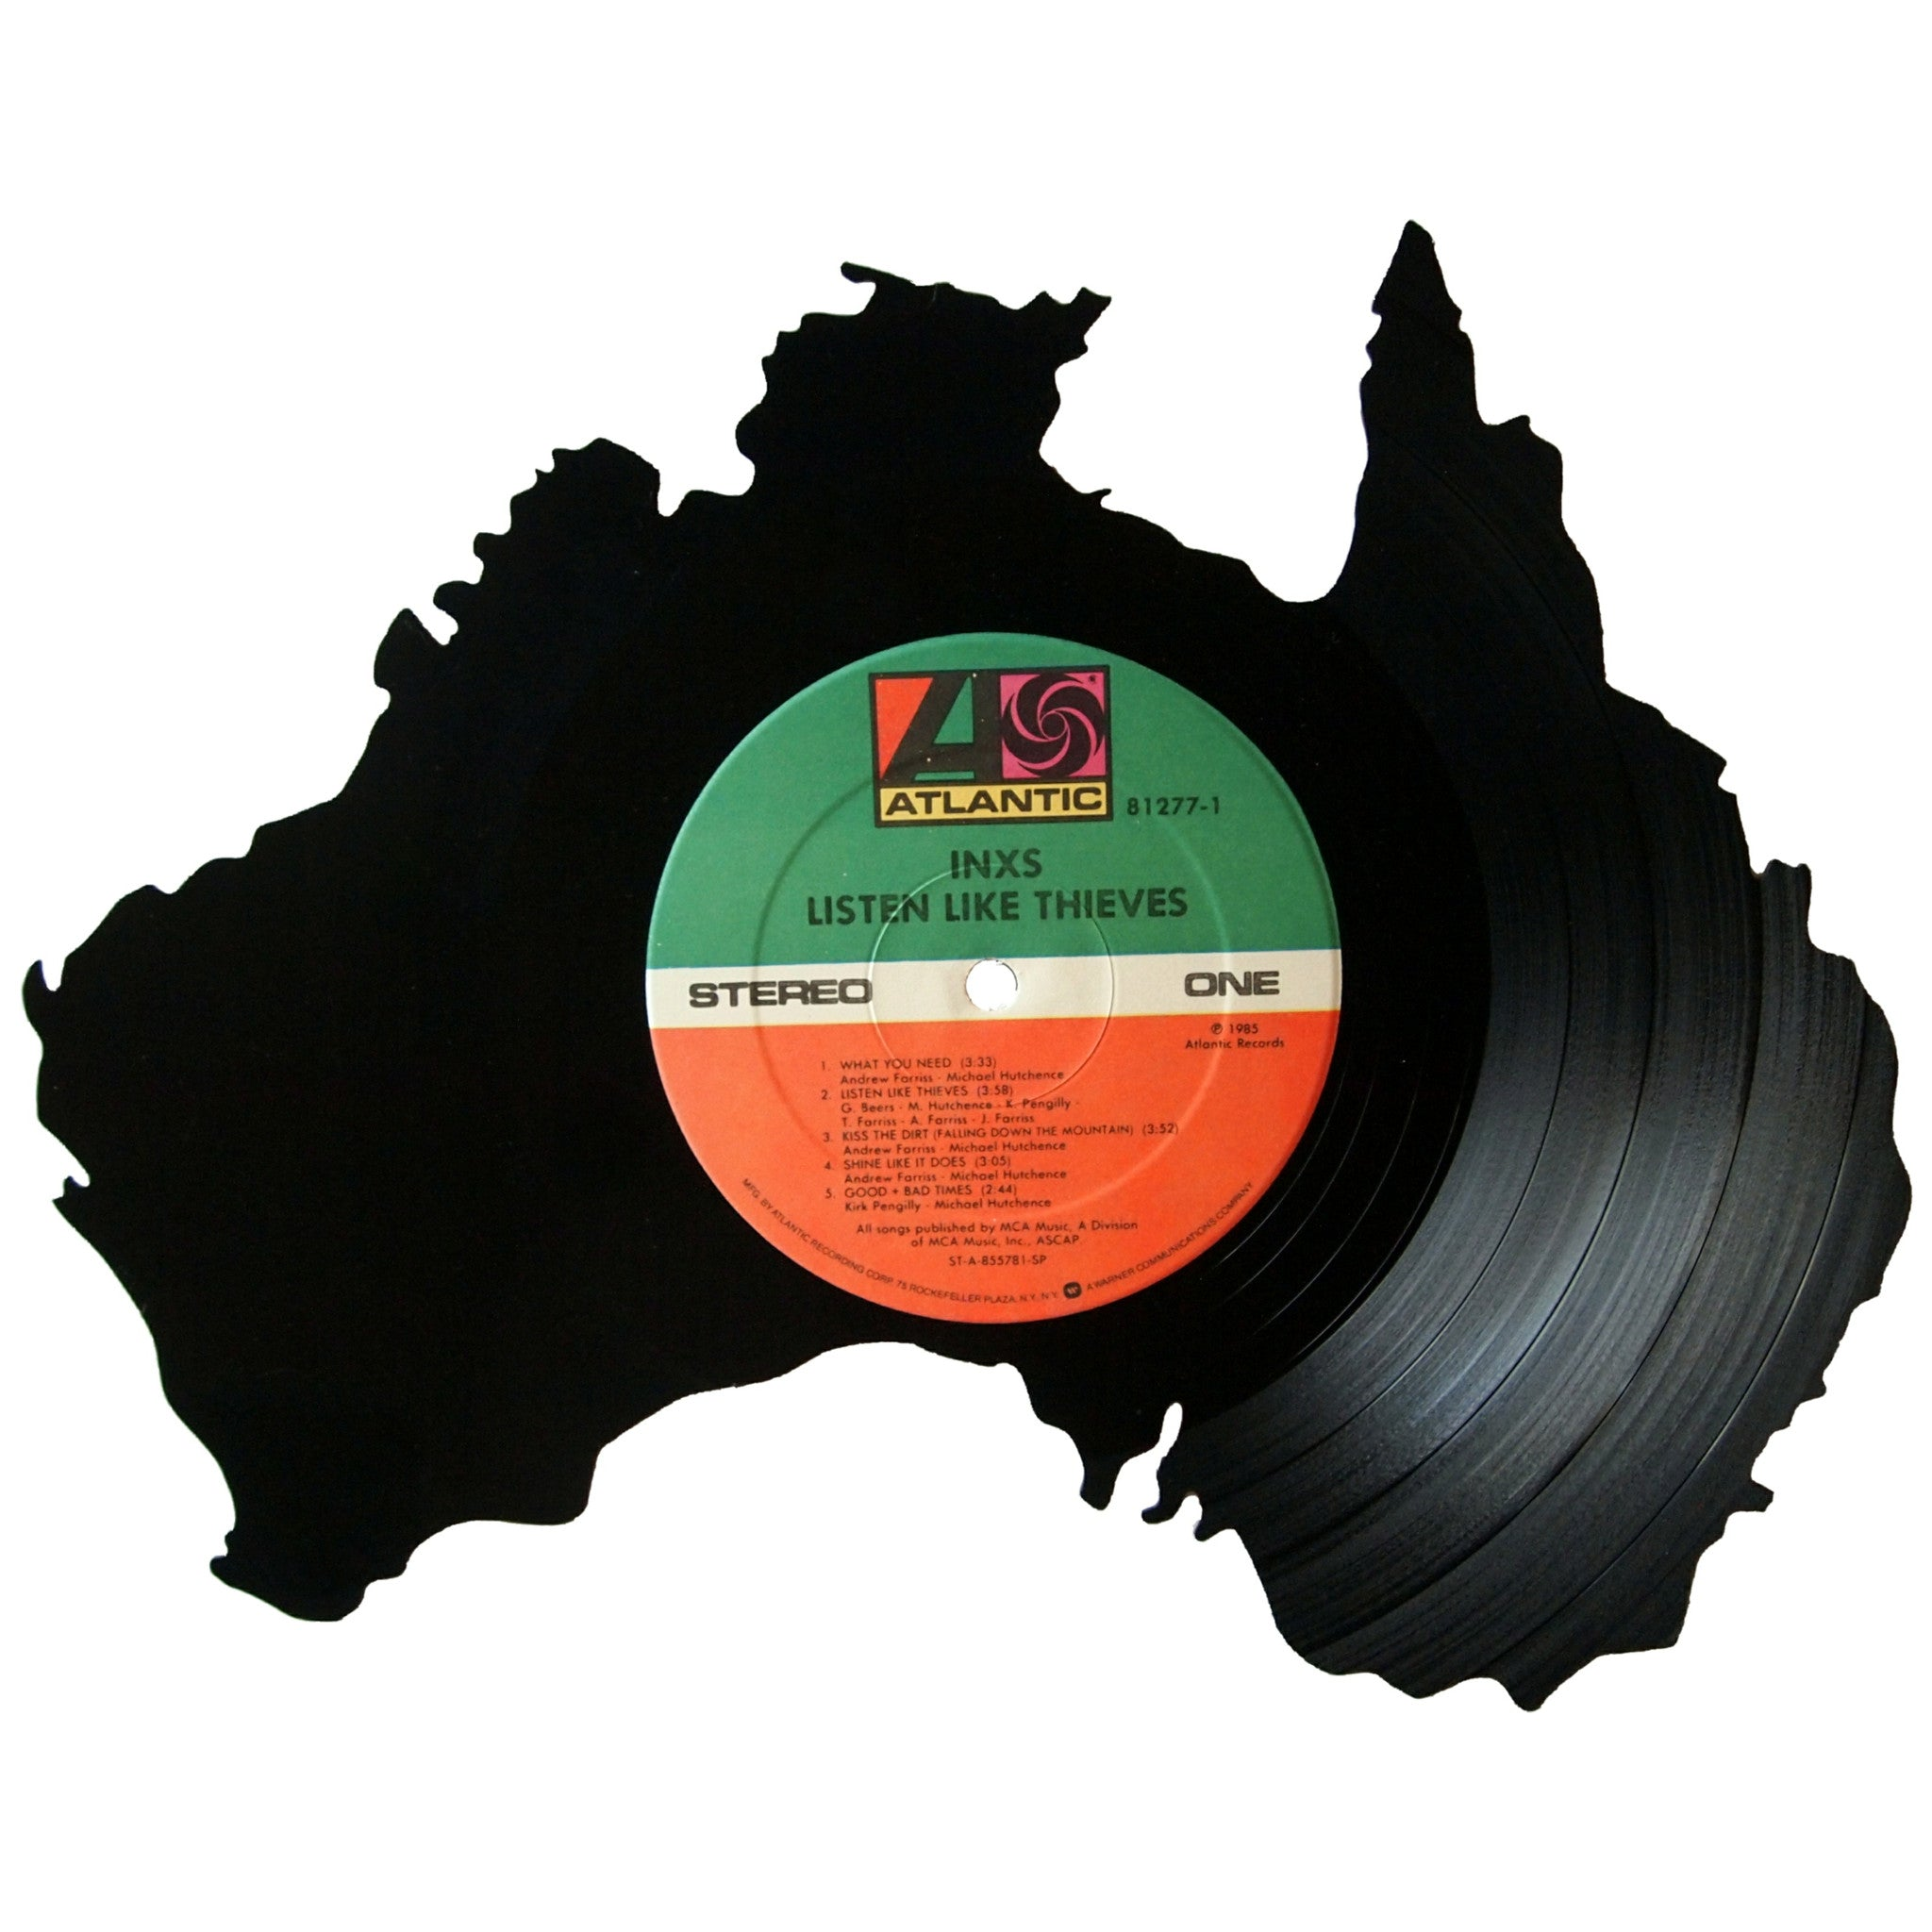 Help Aussie Artists who cant tour!